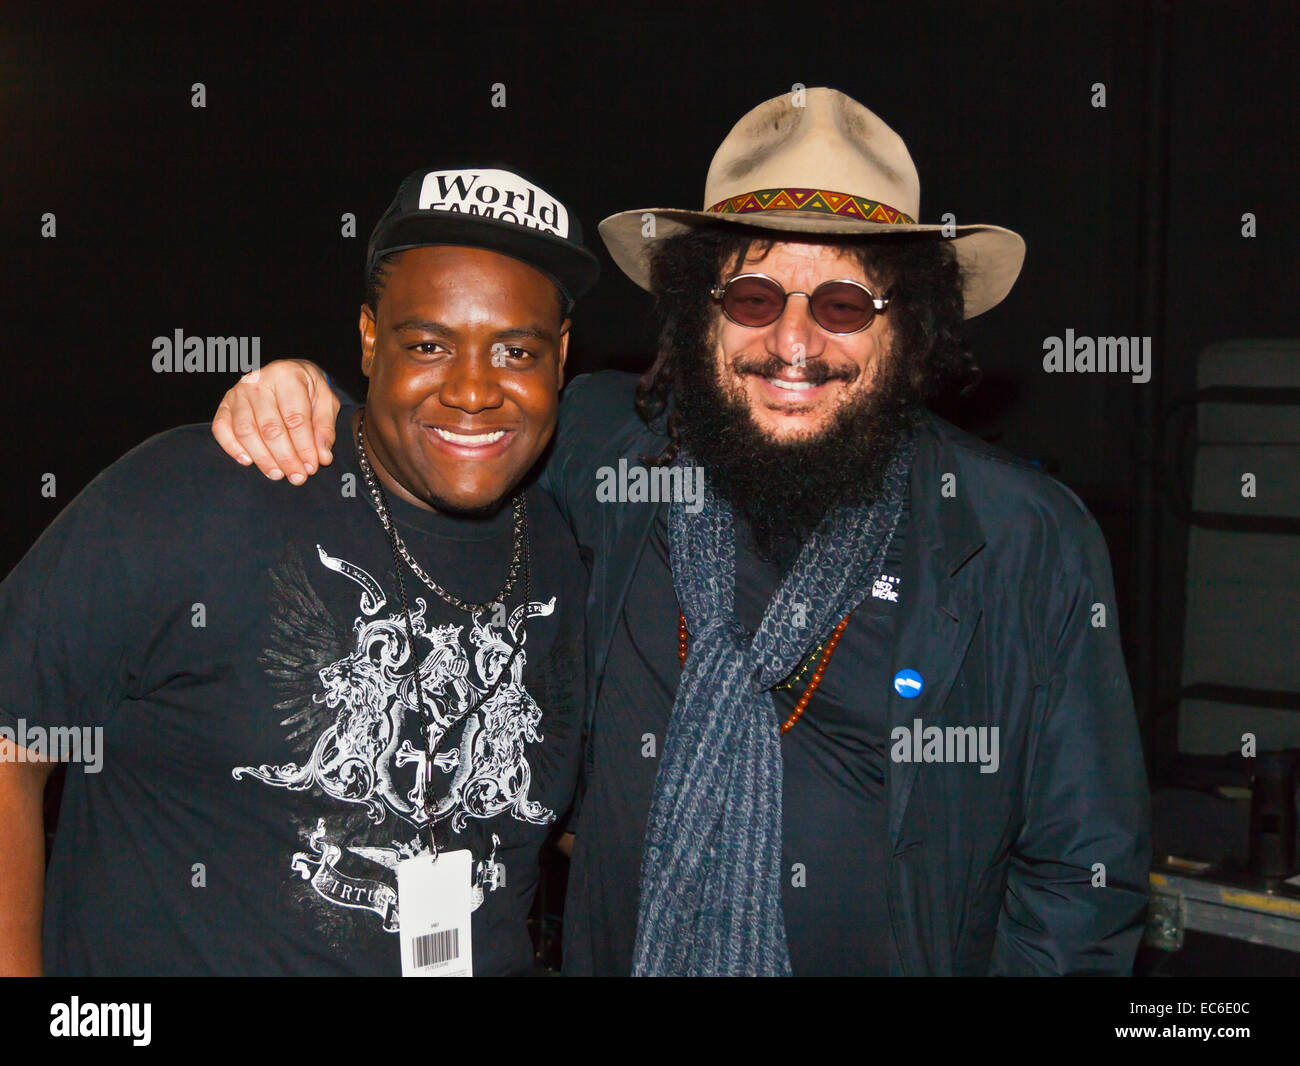 DON WAS backstage at the MONTEREY JAZZ FESTIVAL - Stock Image